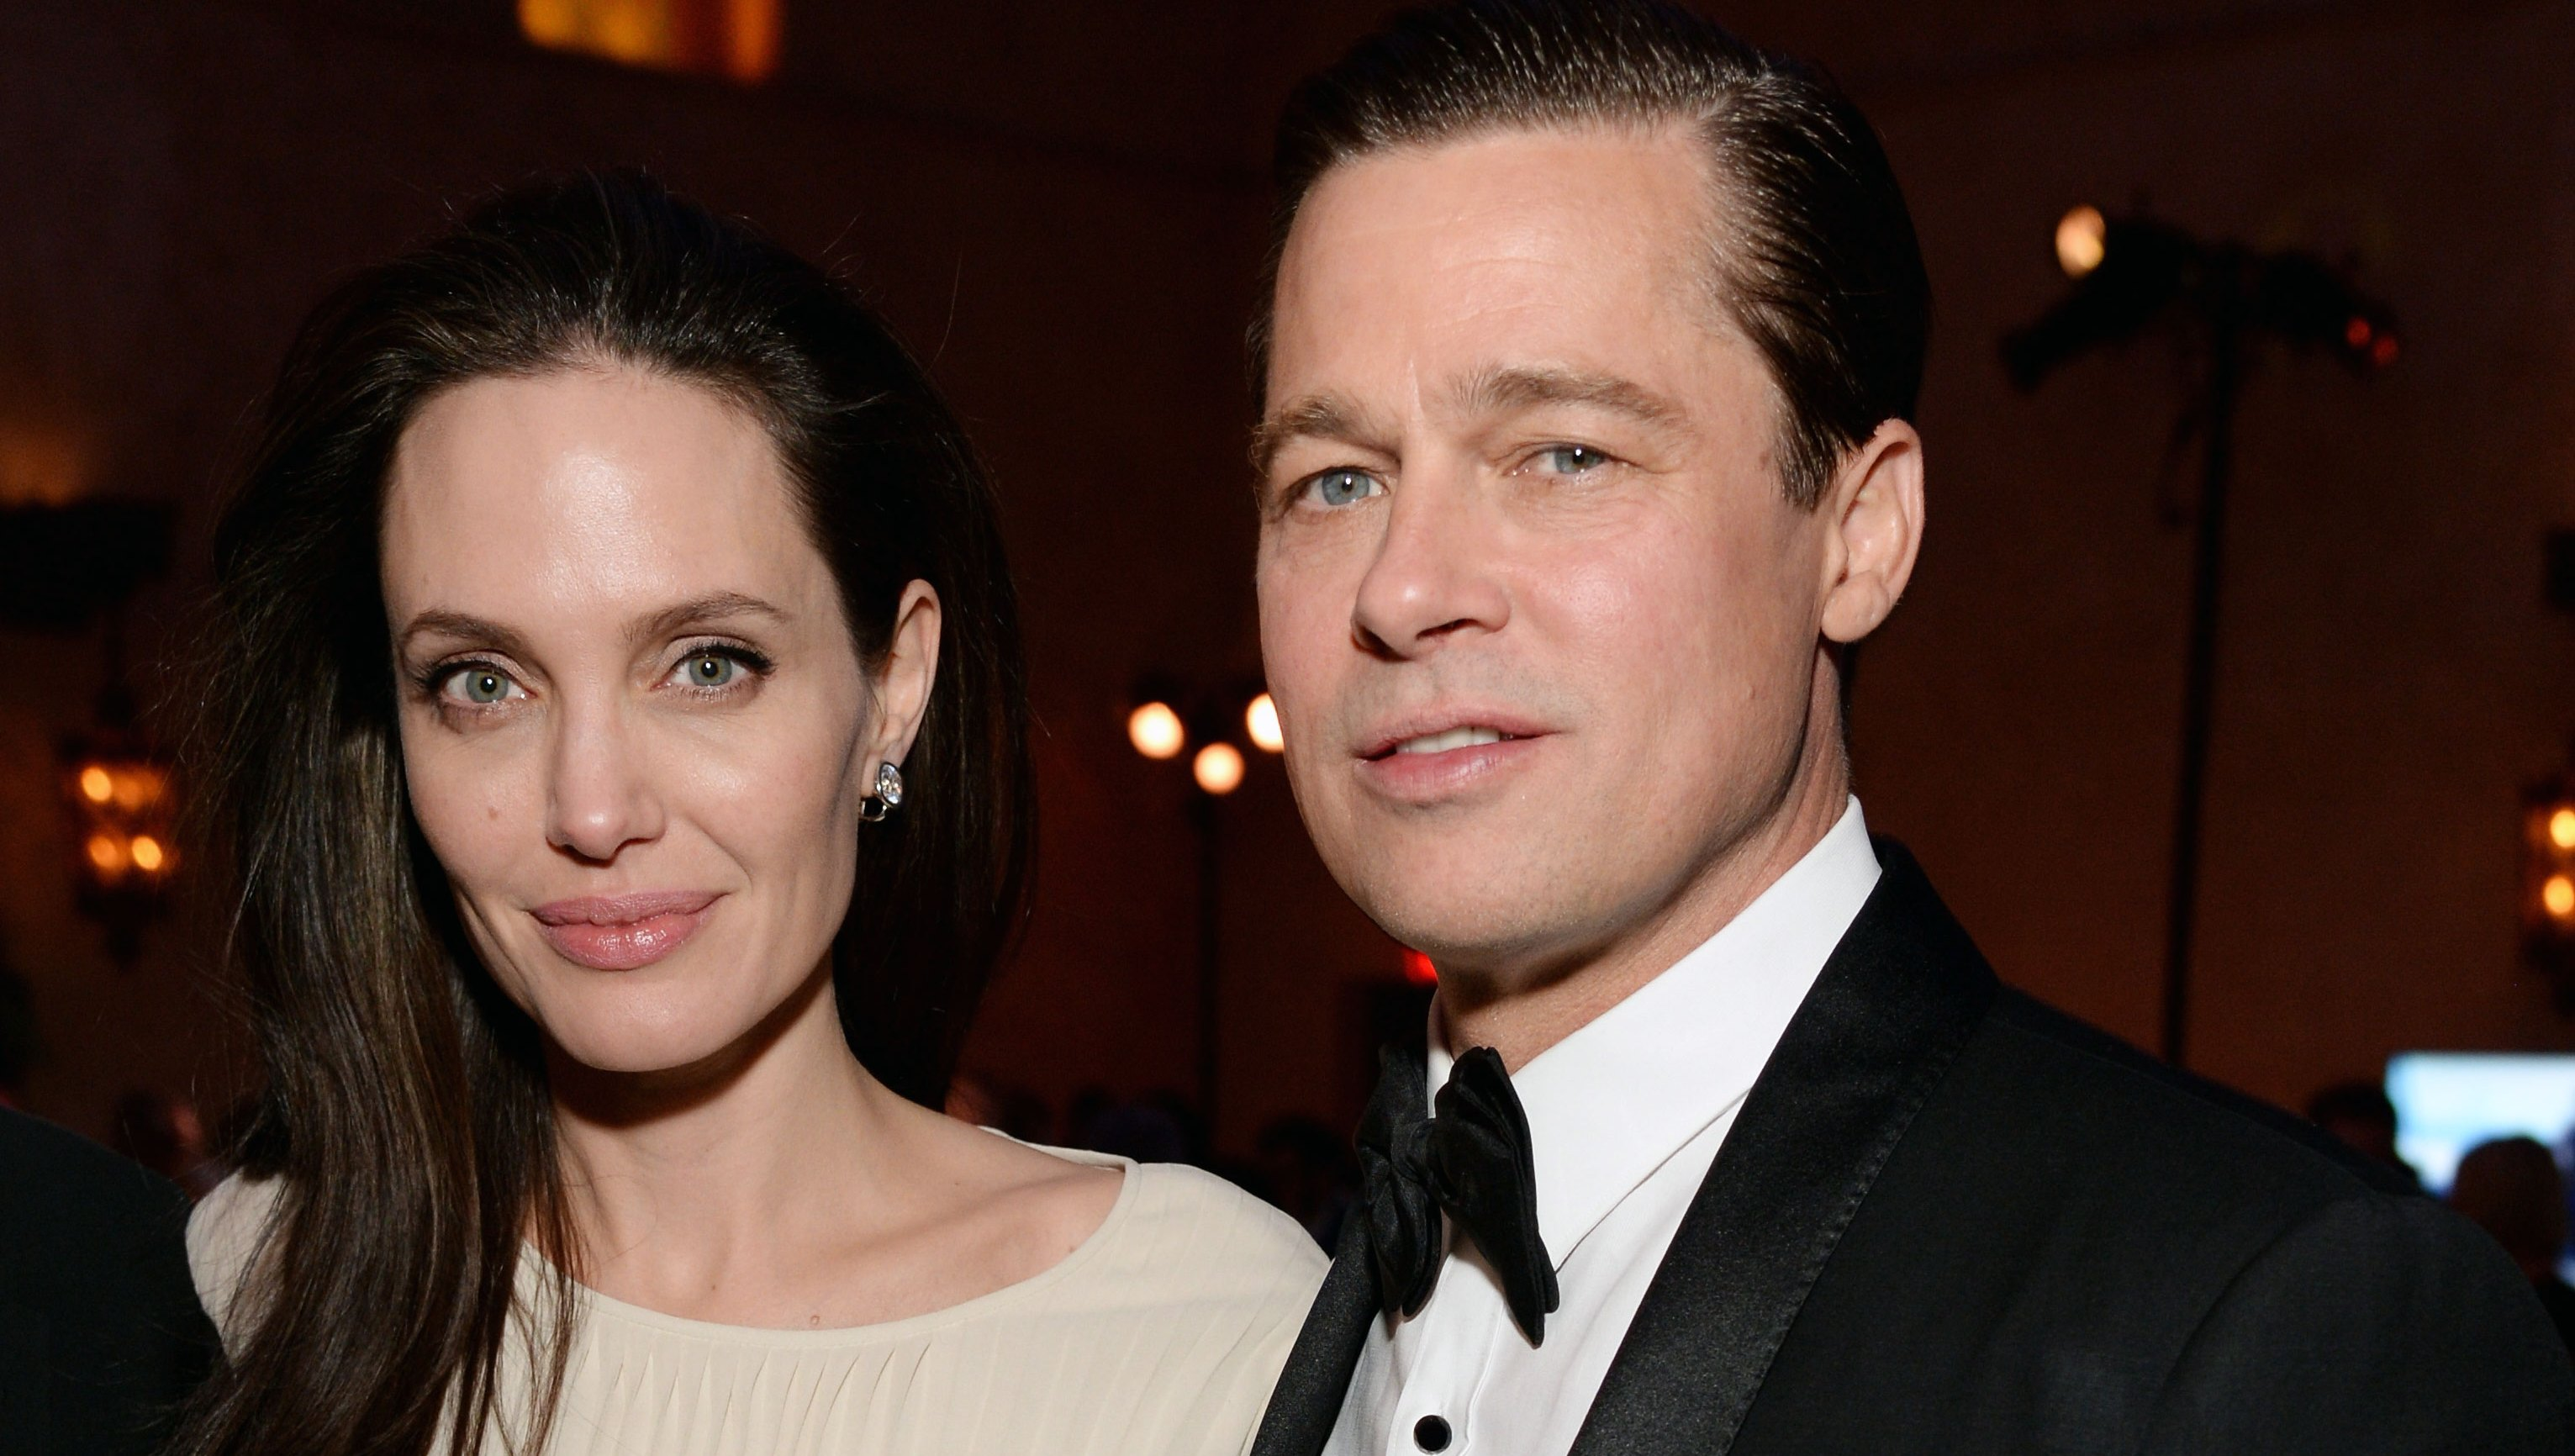 Brad Pitt and Angelina Jolie Are Officially Single